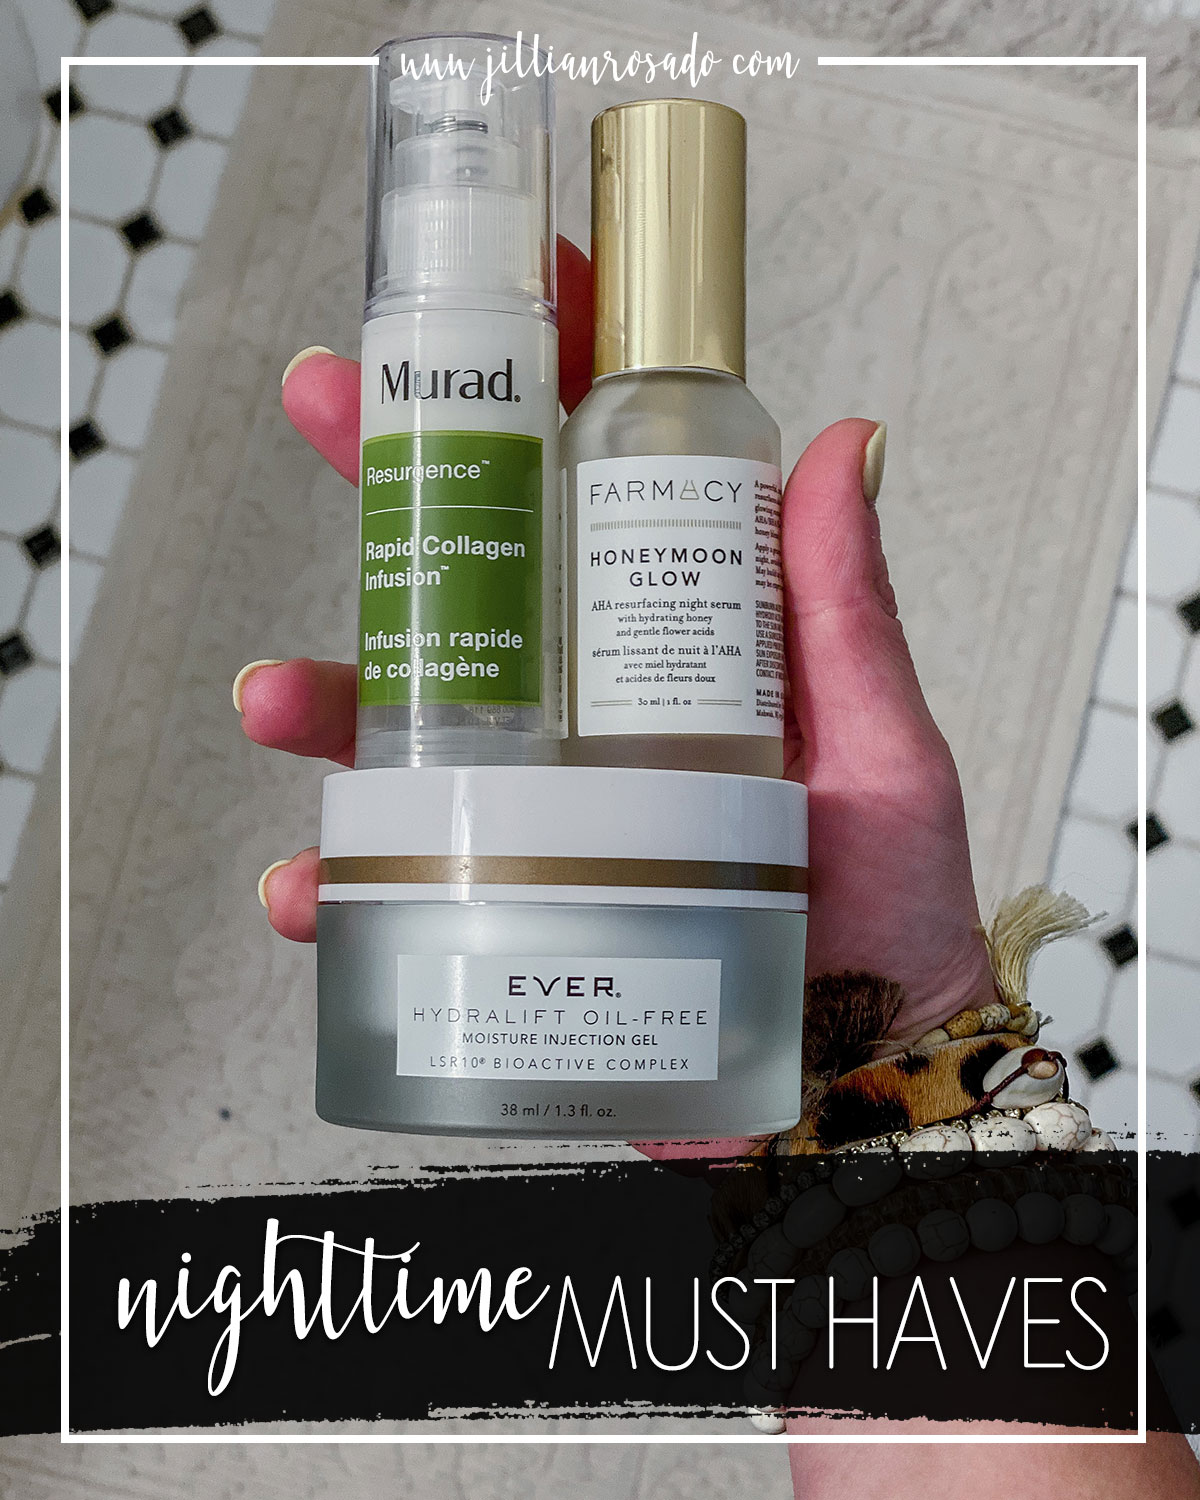 Nighttime Skincare Routine Must Haves